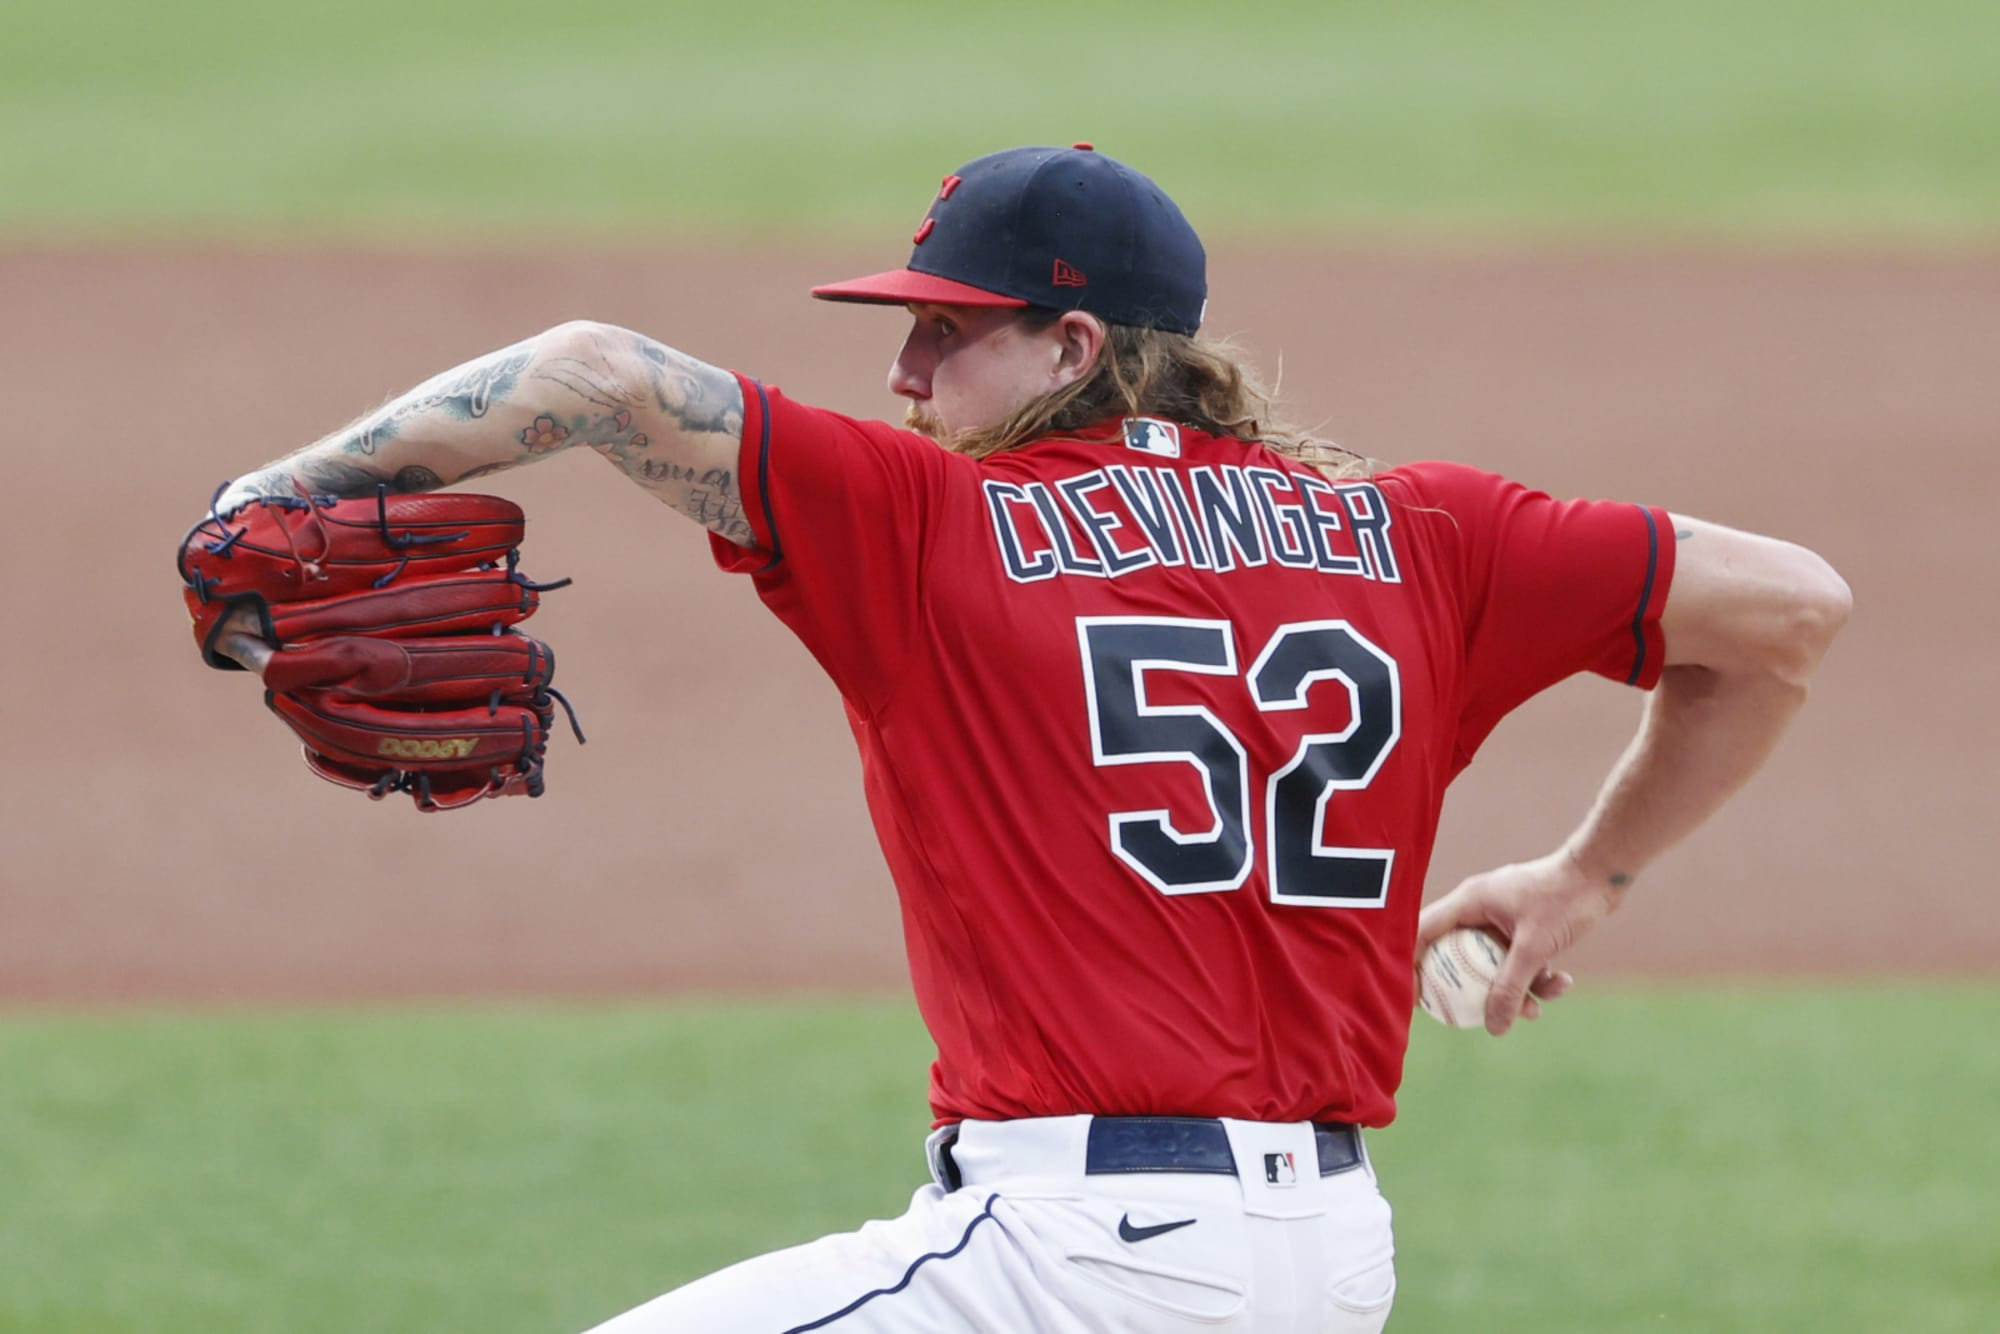 Cleveland Indians trade rumors: Asking price Mike Clevinger sky high